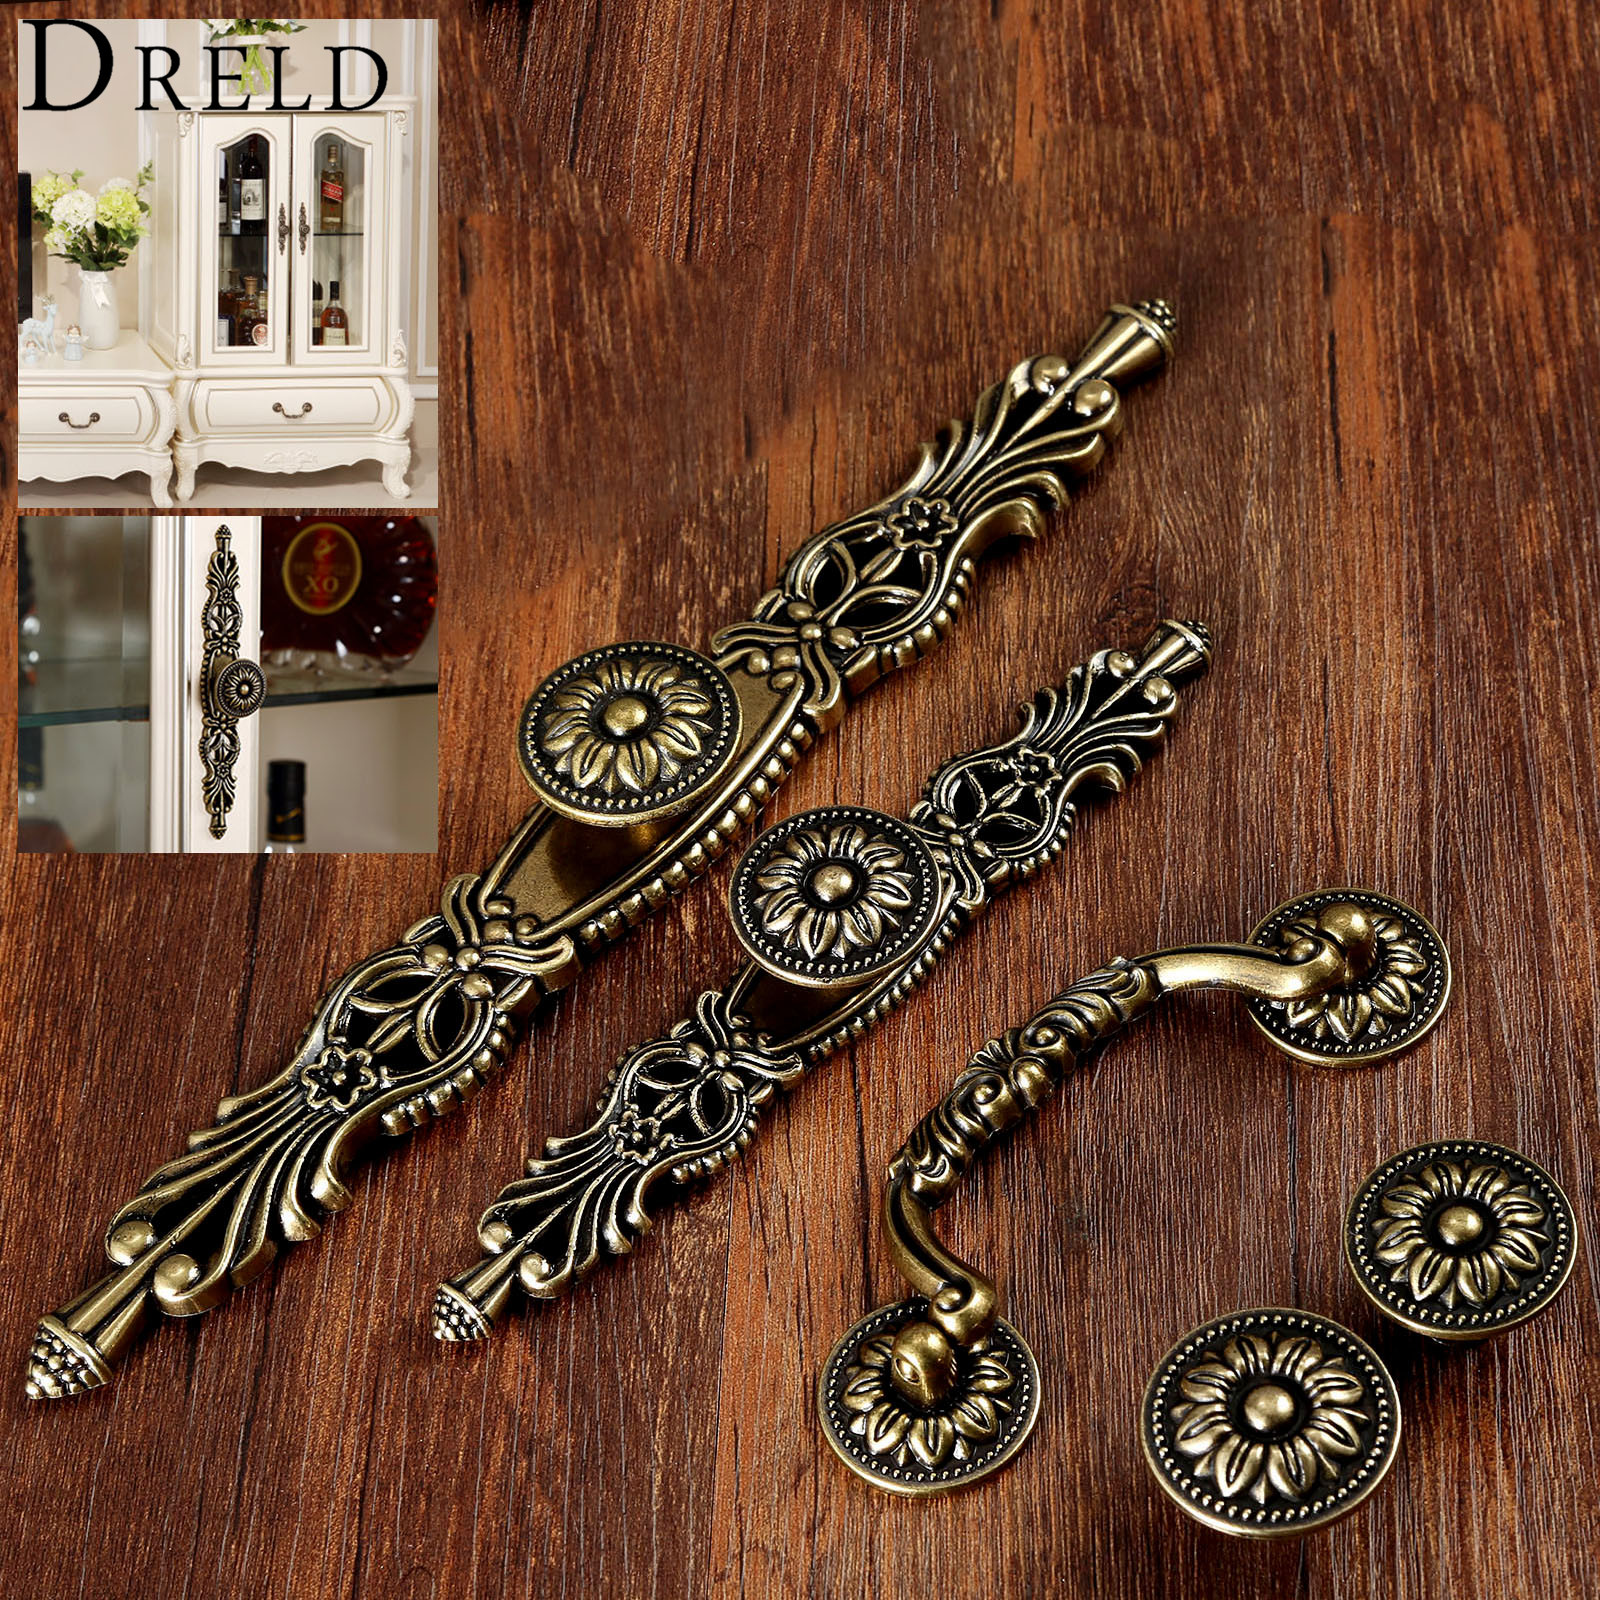 DRELD Antique Furniture Handle Vintage Cabinet Knobs and Handles Wardrobe Cupboard Drawer Kitchen Pull Knob Furniture Hareware modern handle alloy knobs and mini handles door handle cupboard drawer kitchen pull knob furniture 7 10mm 20pcs